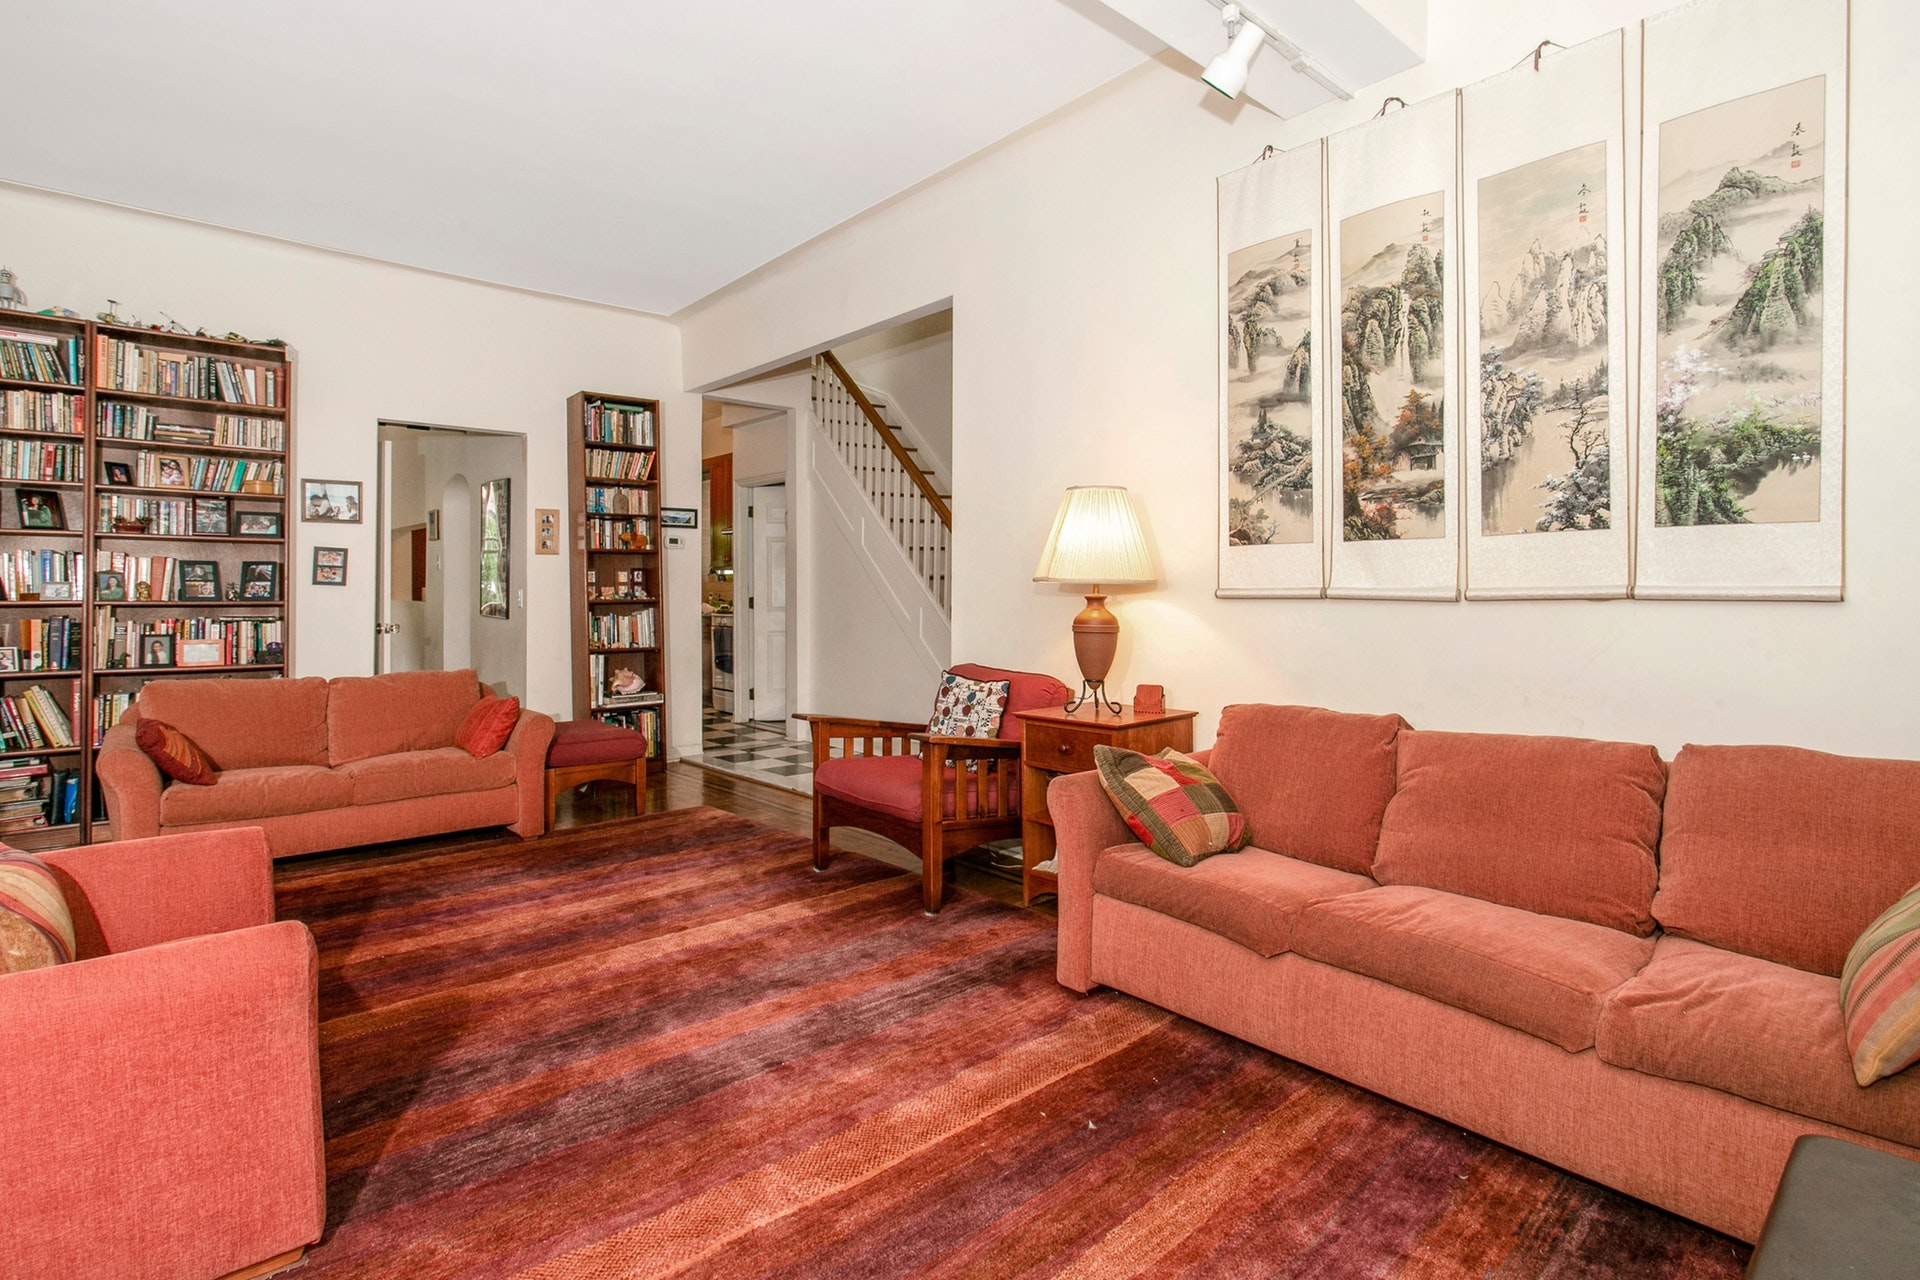 4-Bd. Brick House w/ High Ceilings, Charming Deck & 2-Car Garage